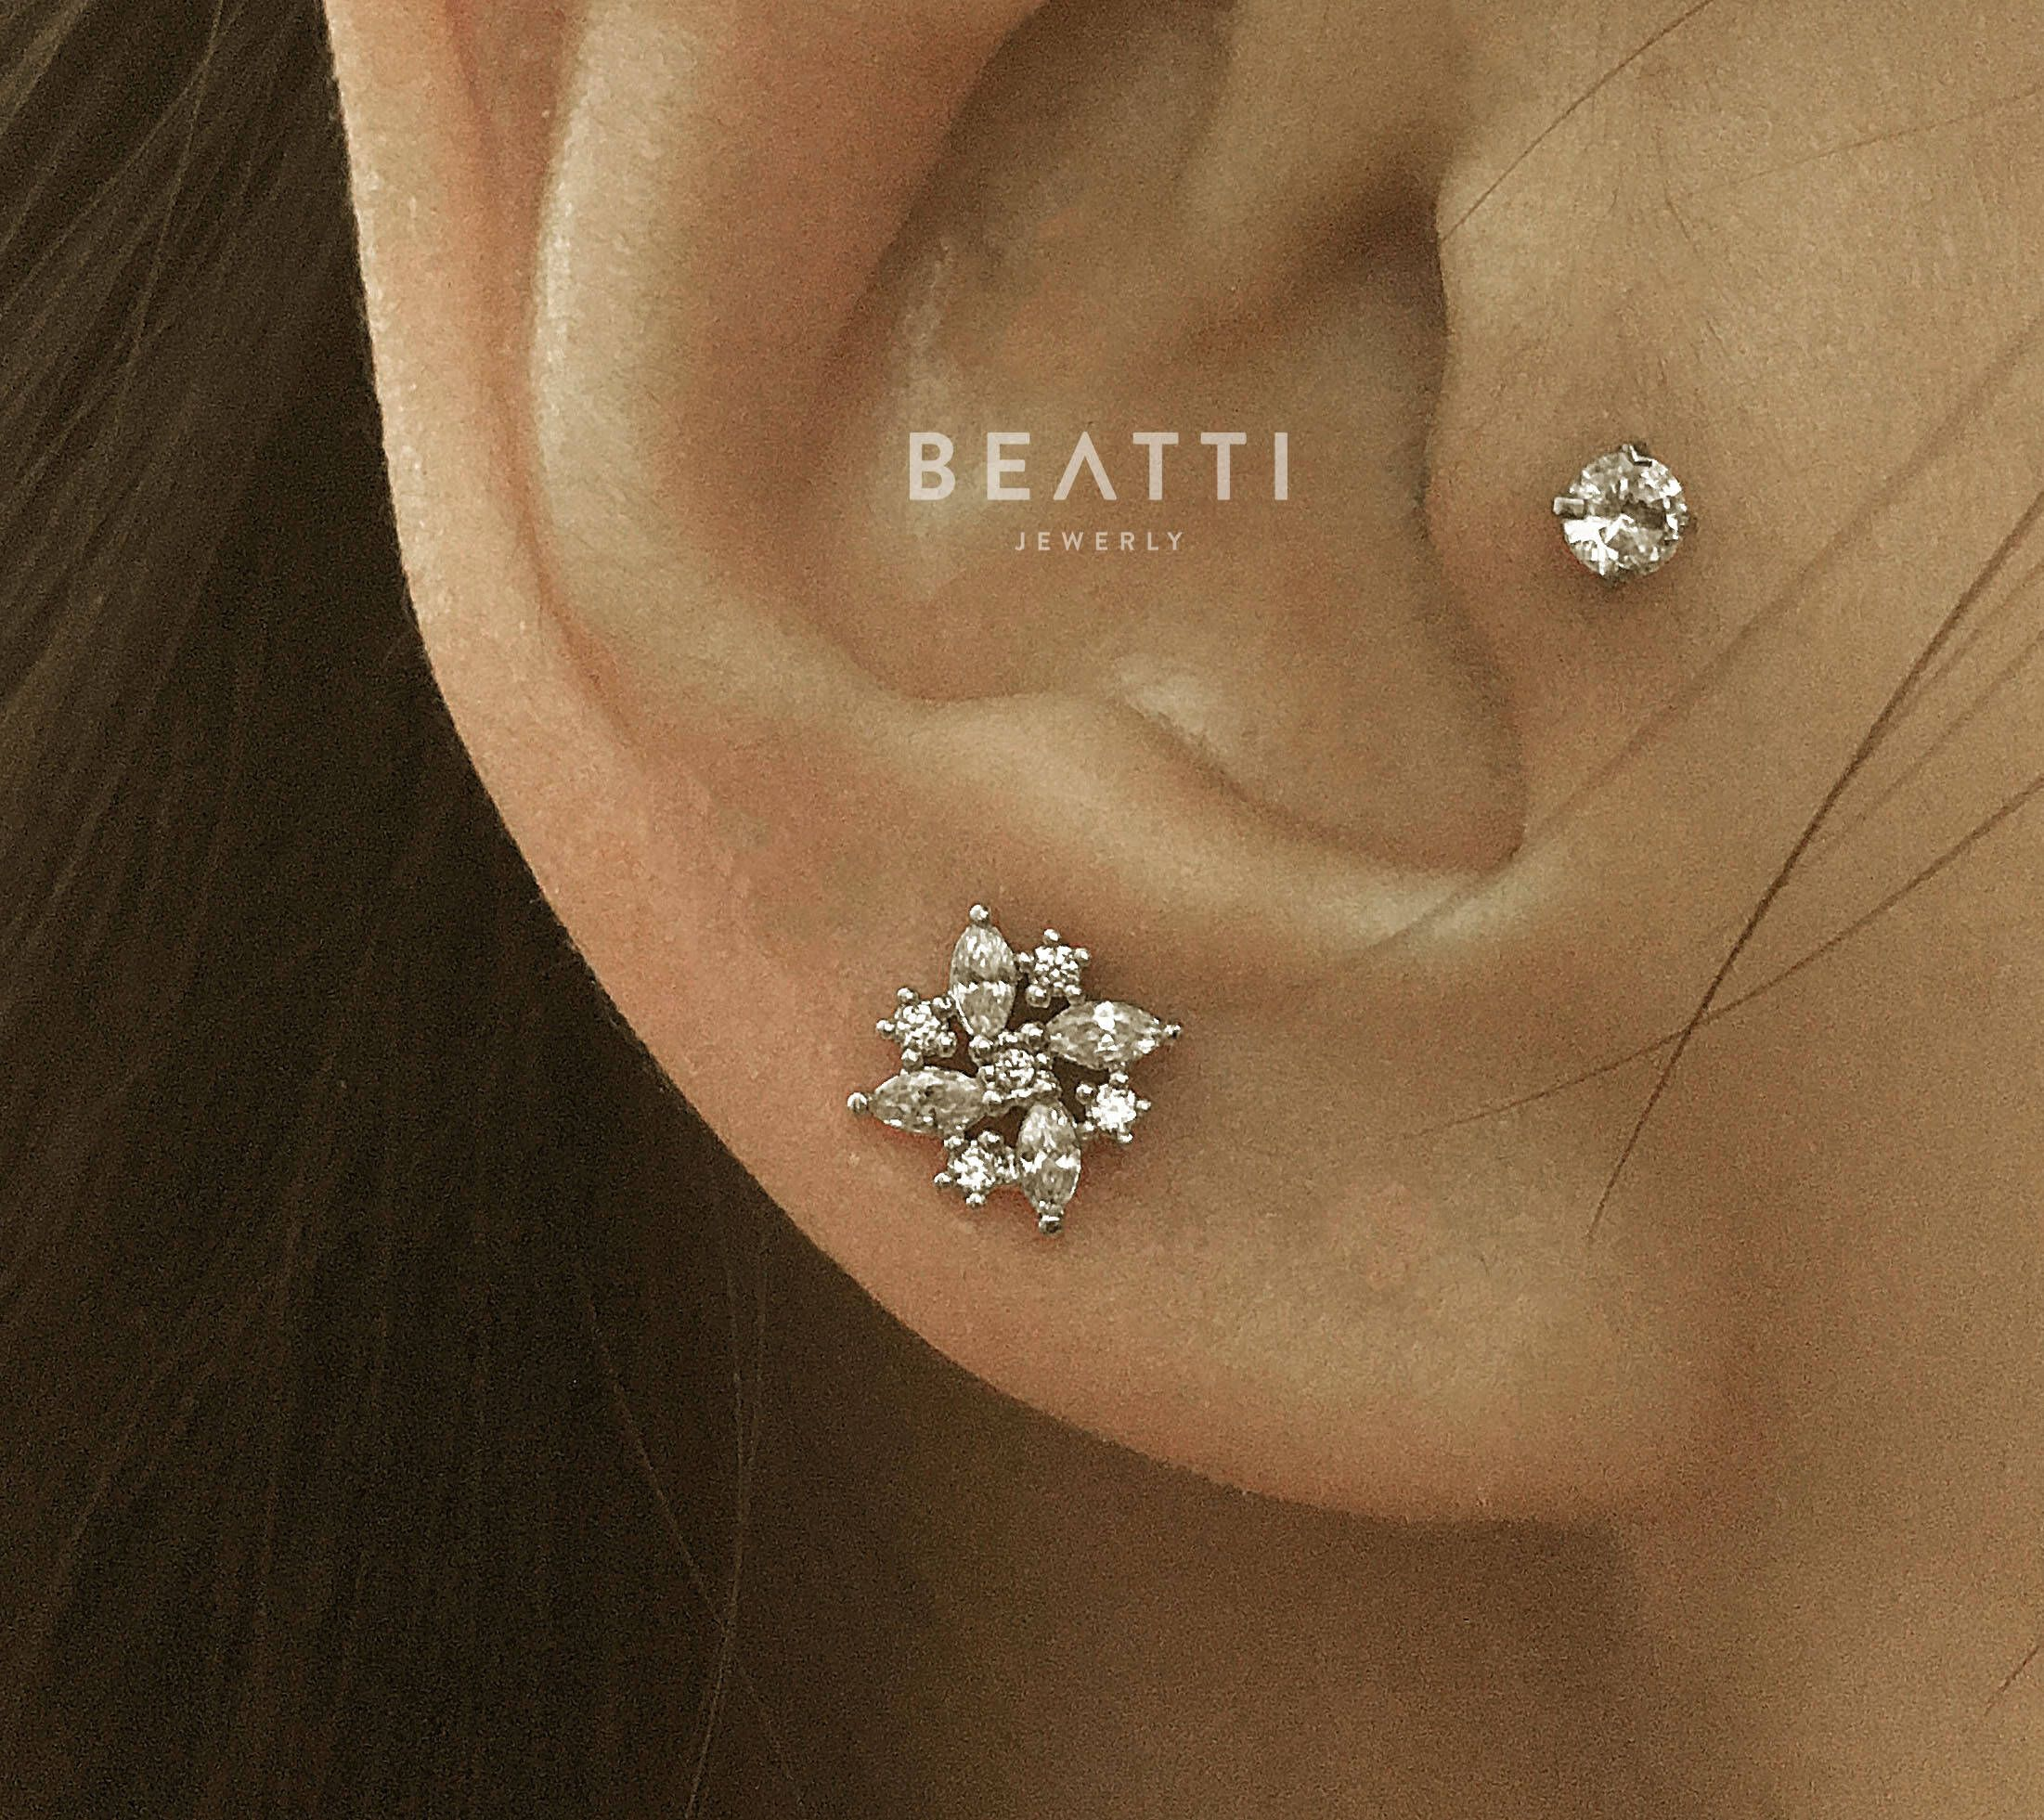 Cz Flower Cartilage Earrings Conch Helix Piercing Jewelry Tragus